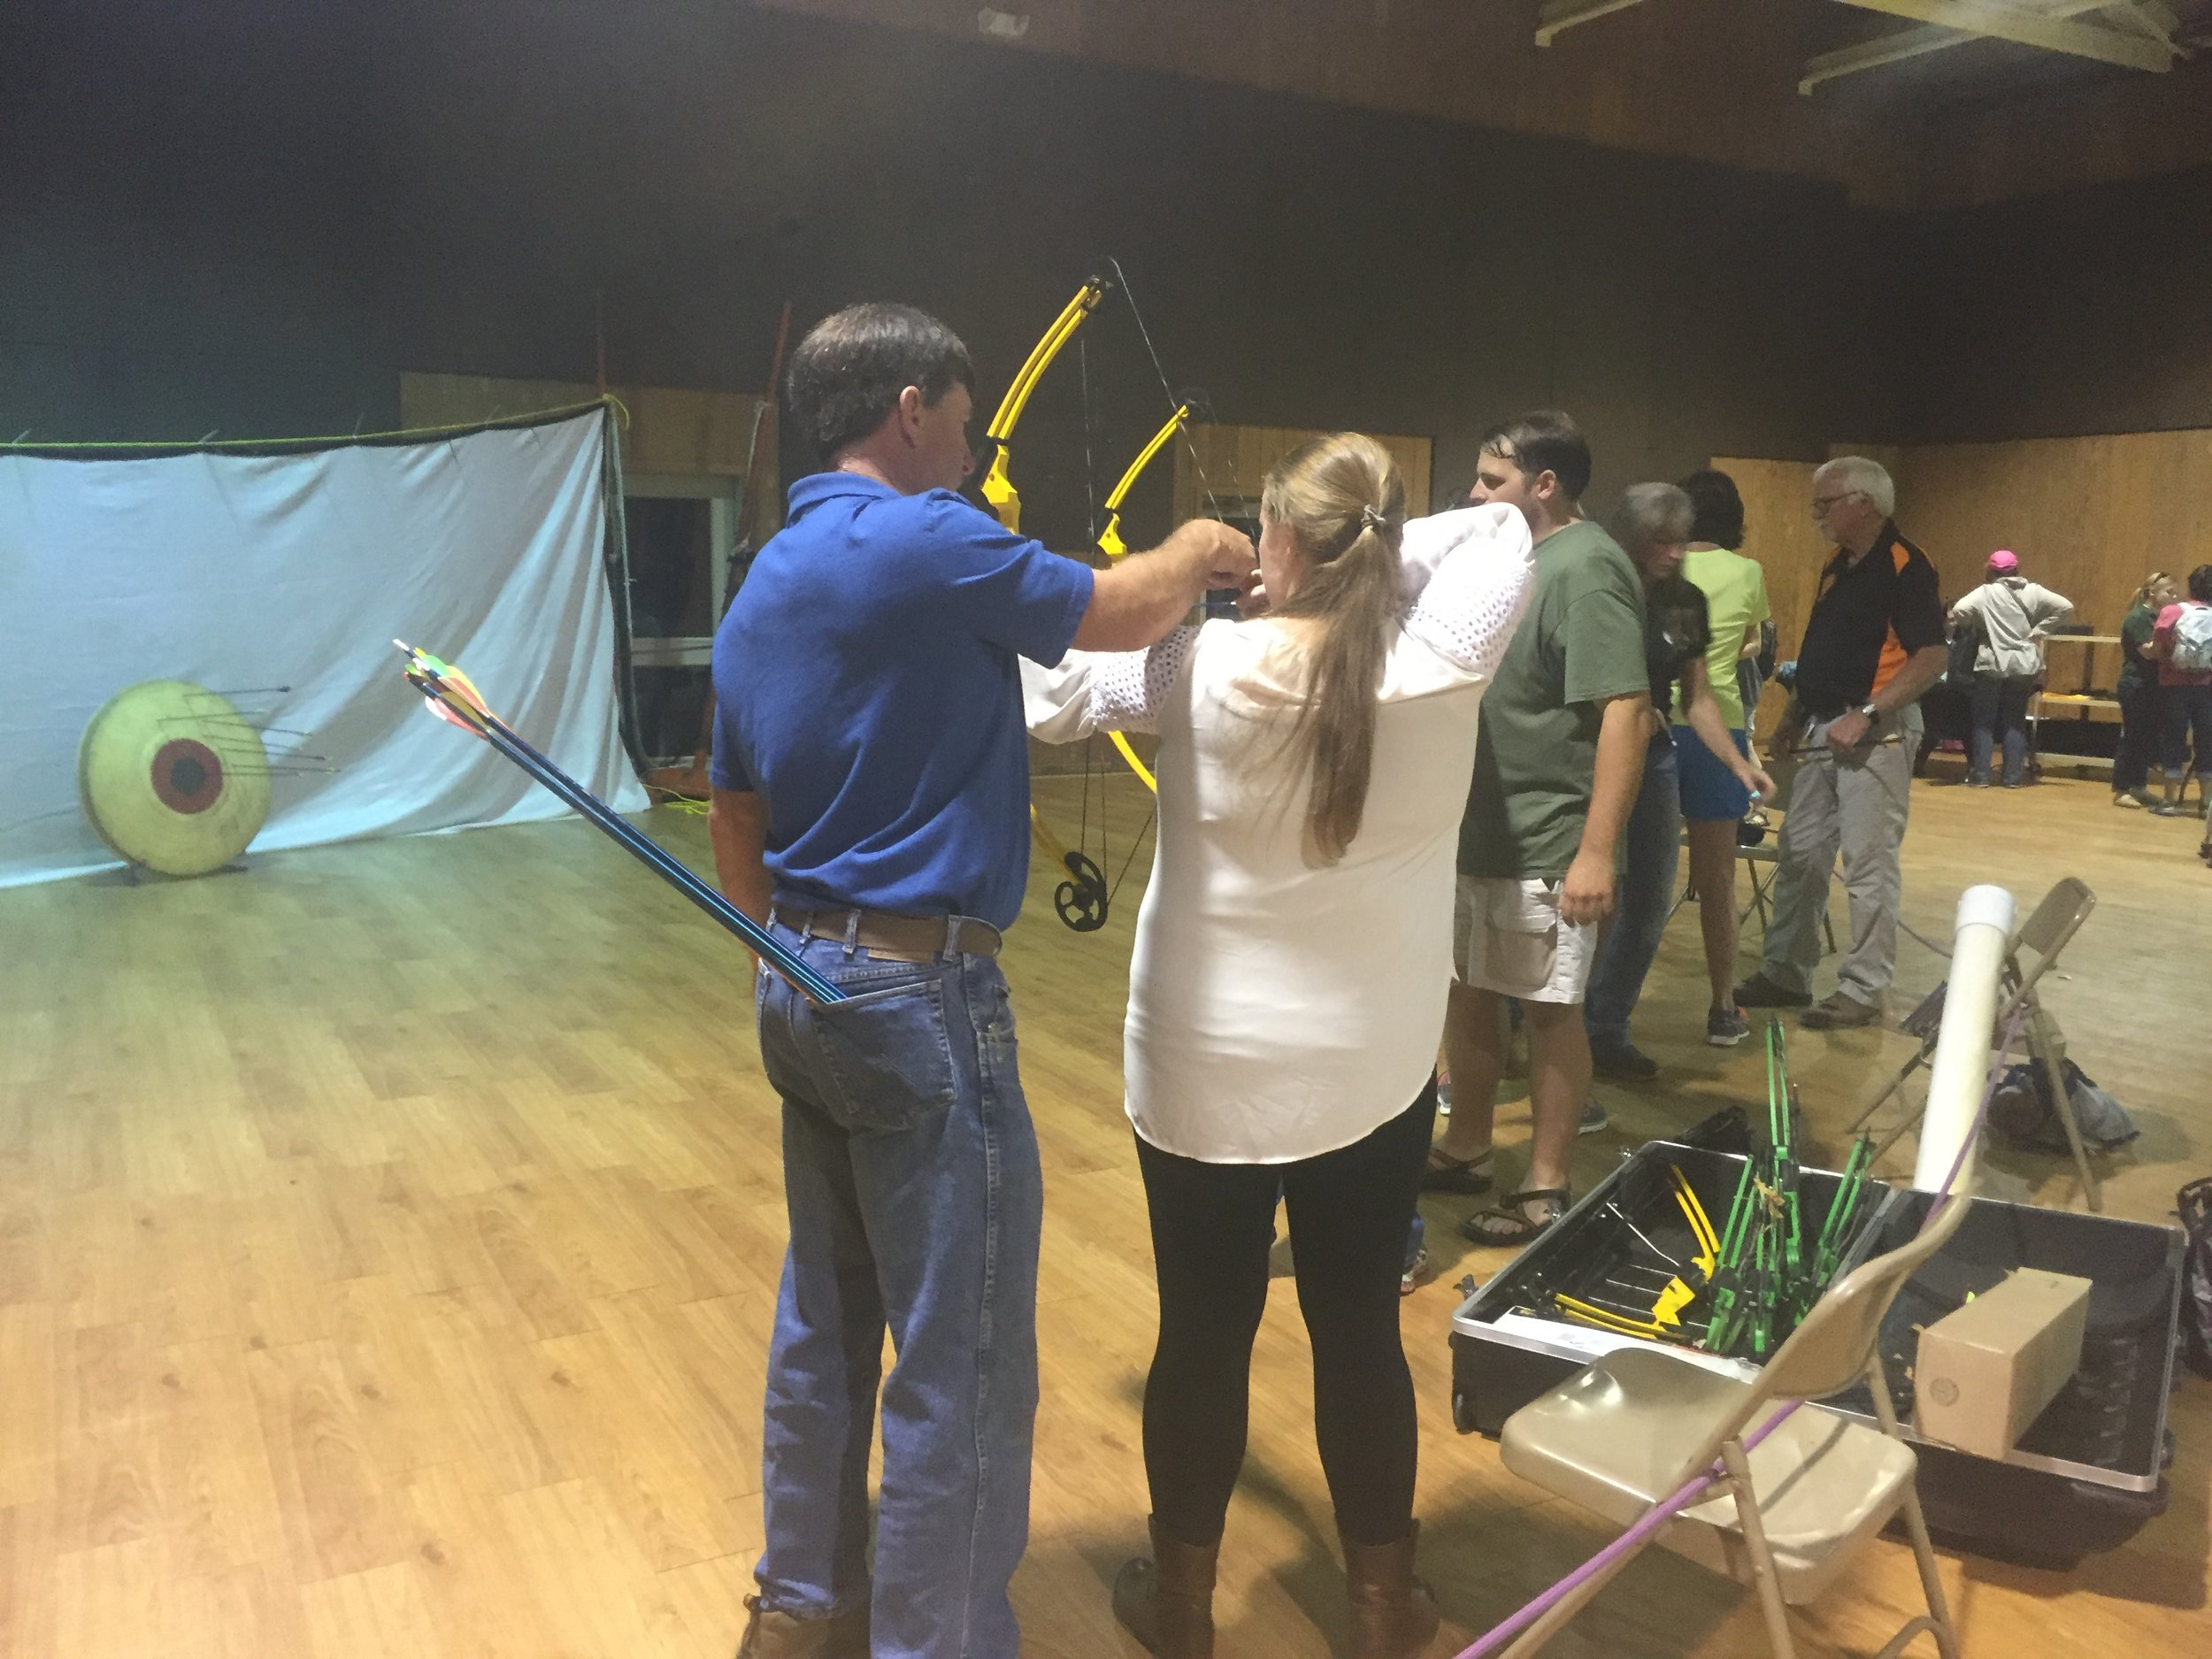 """Winner winner, chicken dinner!"" After our delicious fried chicken supper, Mike Guilotte guided me RIGHT to the bullseye during archery practice on Friday evening!"